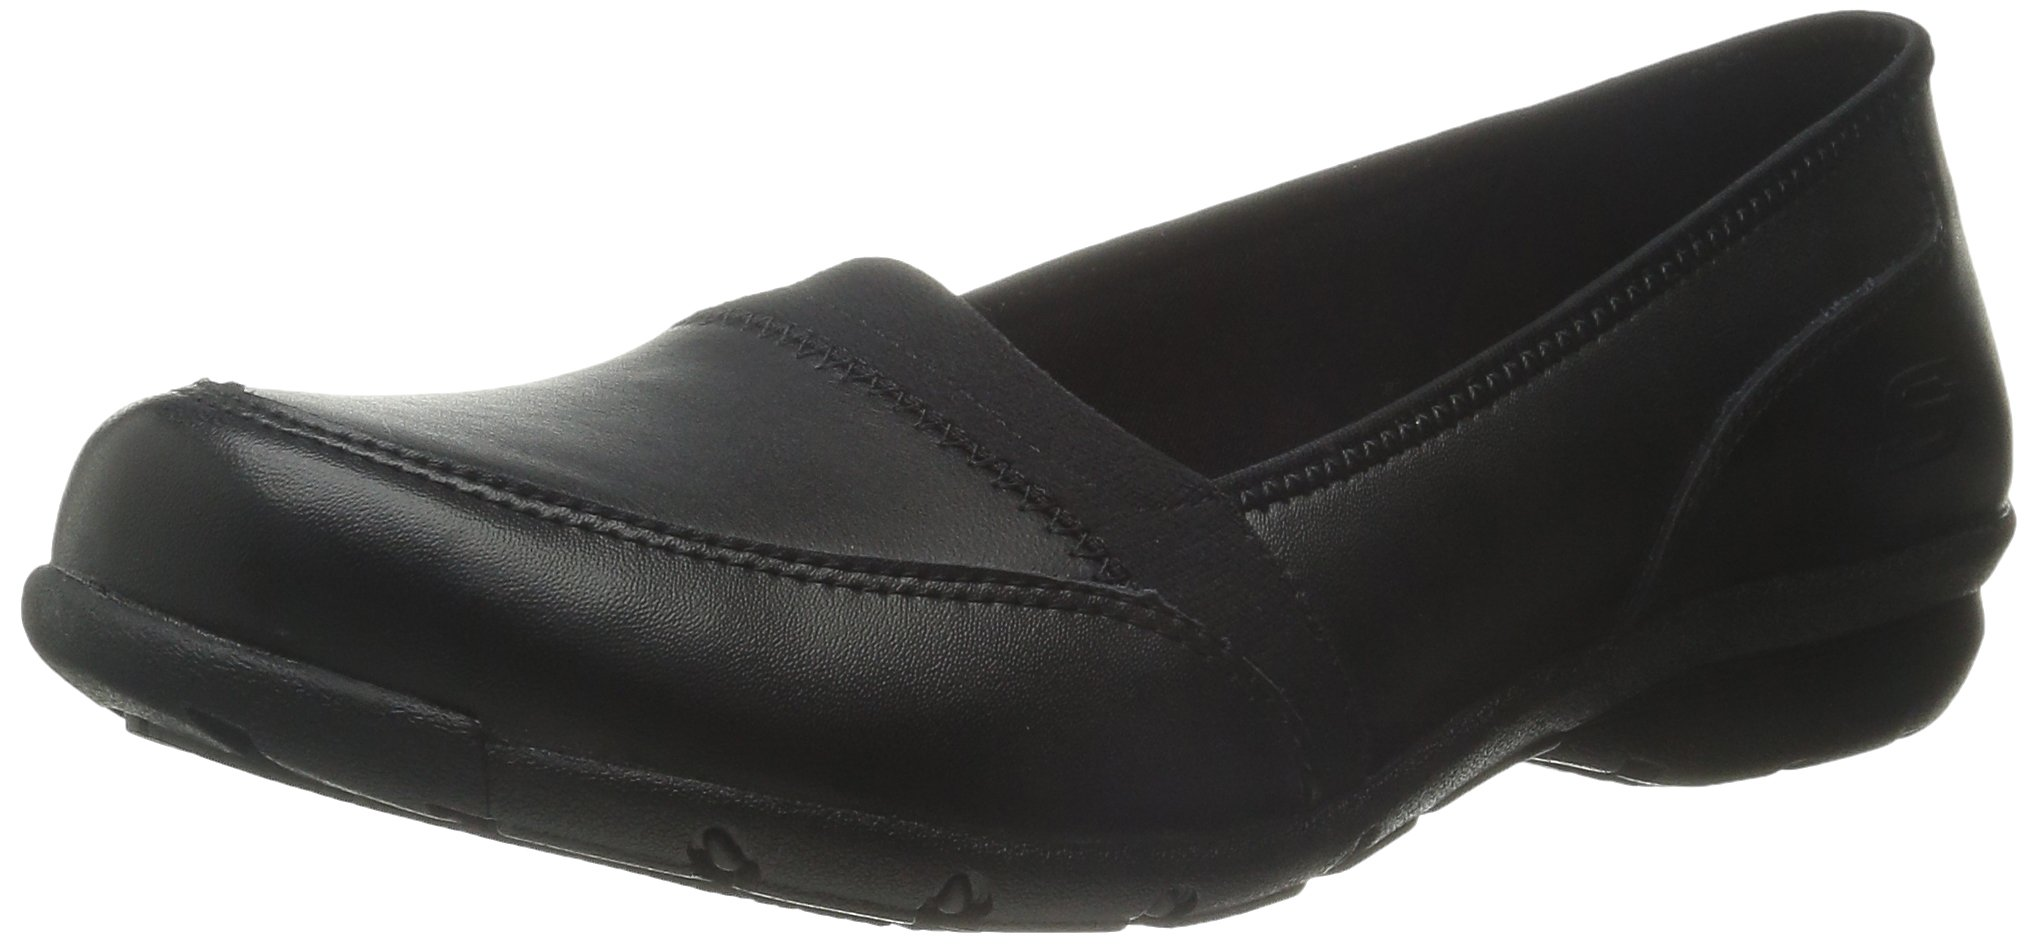 Skechers for Work Women's Slip On Flat,Black,6.5 M US